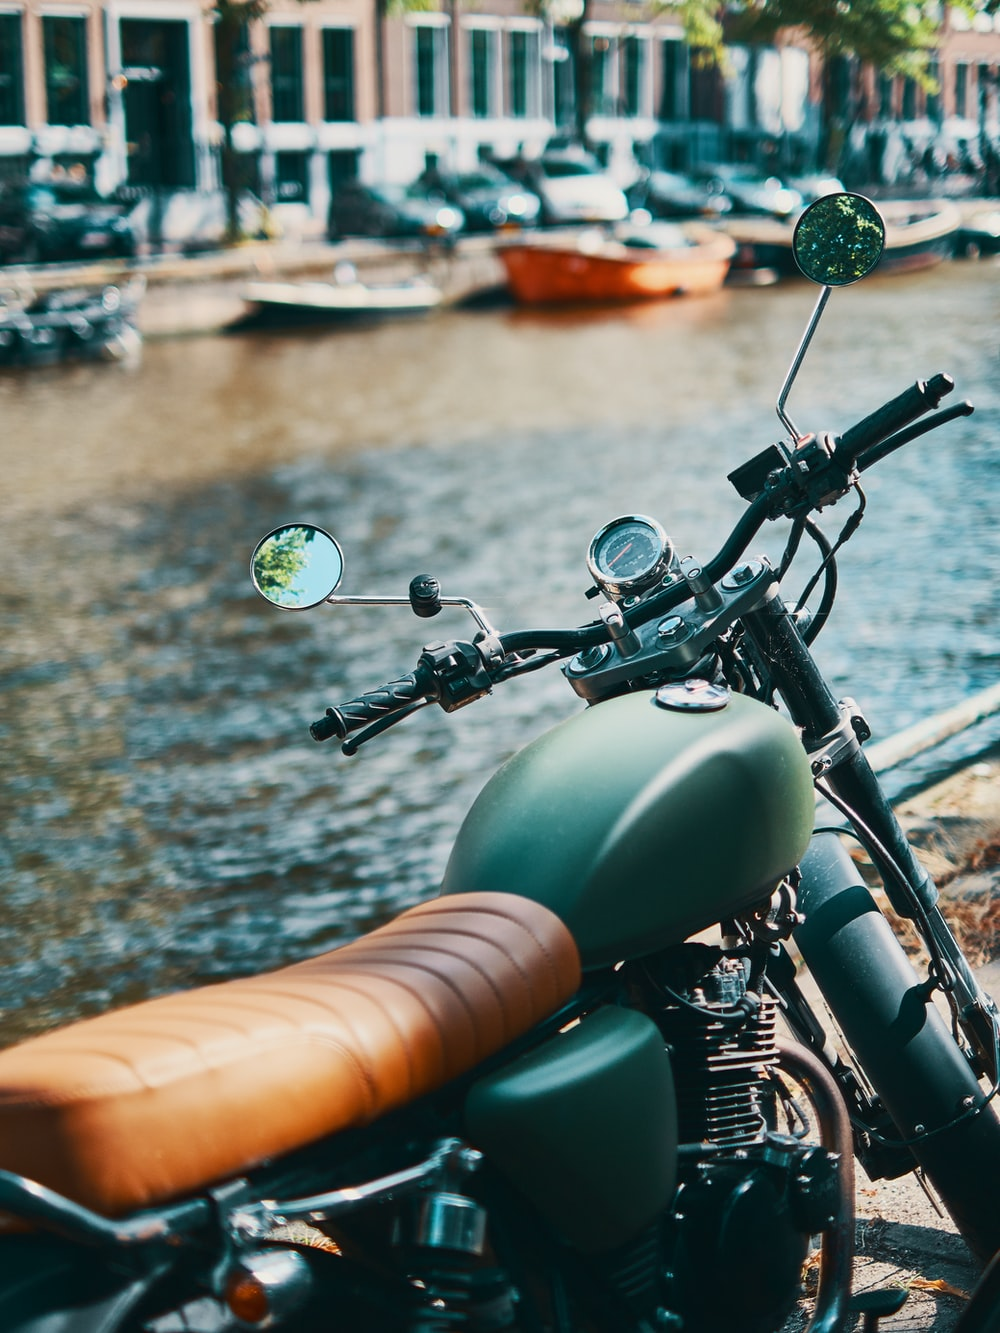 brown and green motorcycle